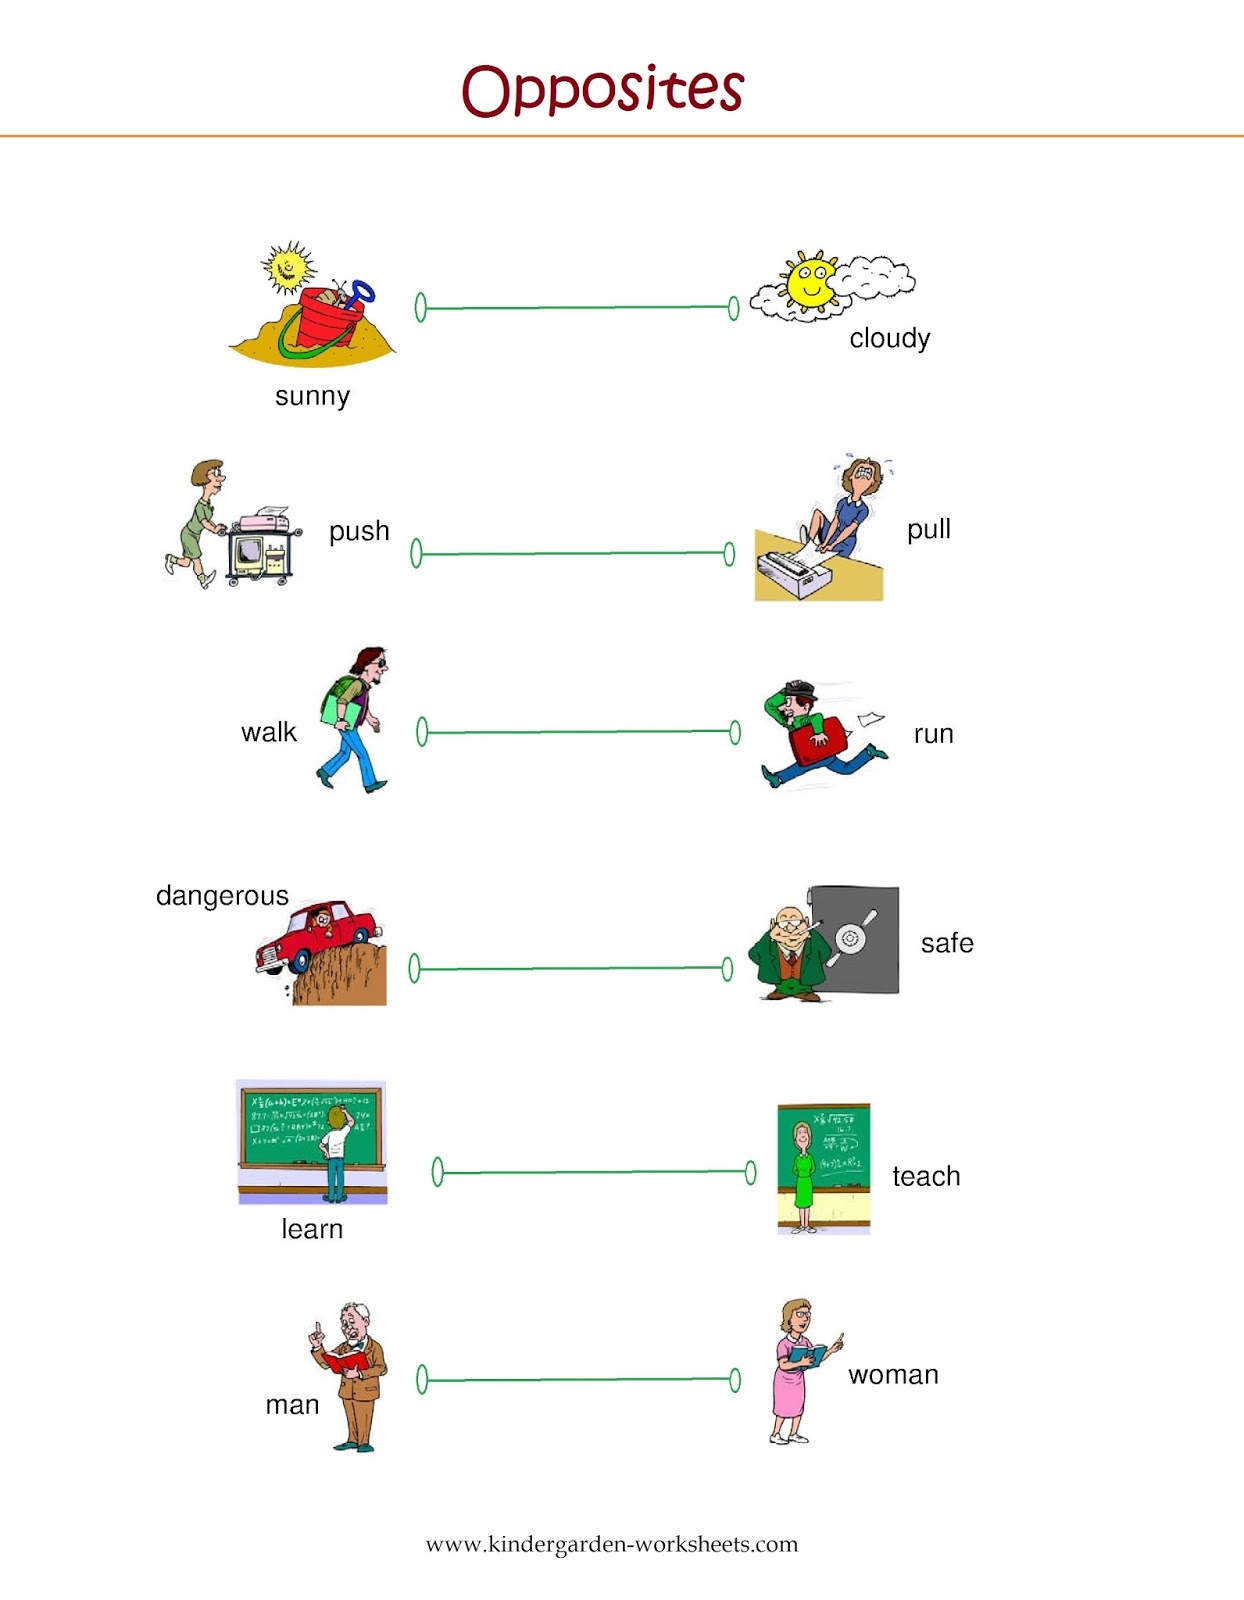 Opposite Words Worksheets For Kindergarten Scalien – Opposite Words Worksheets for Kindergarten